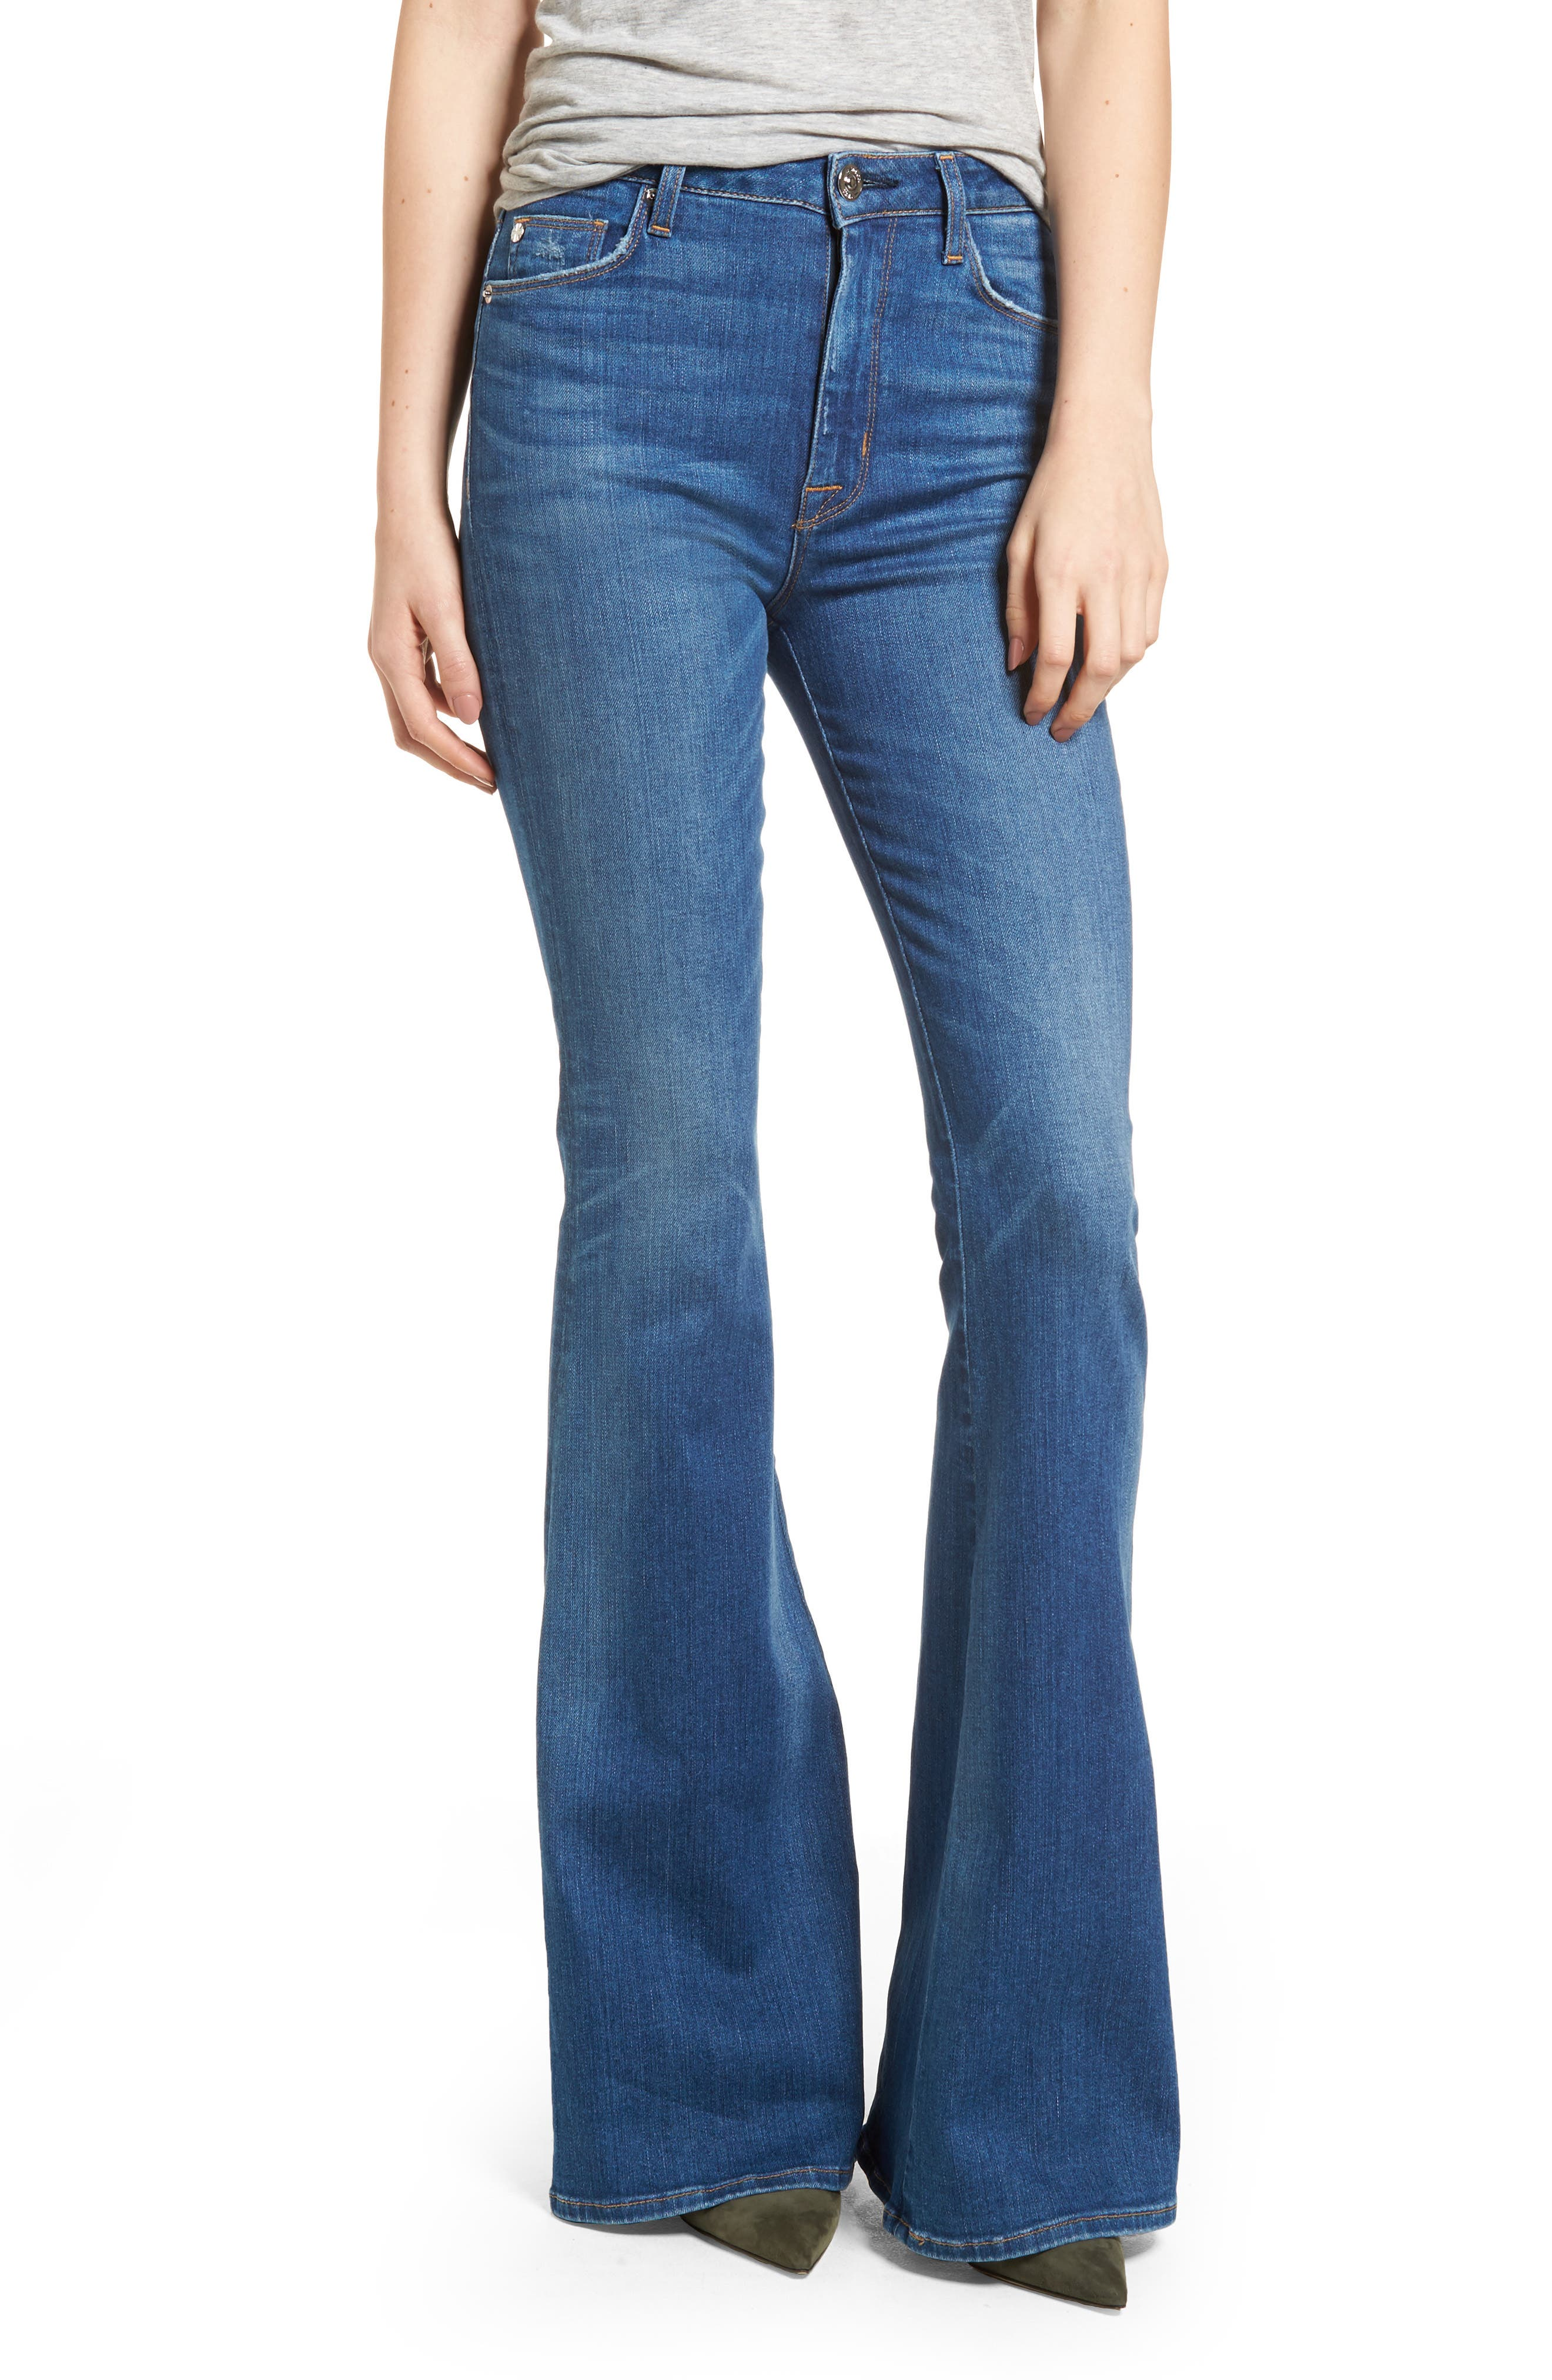 Main Image - Hudson Jeans Holly High Waist Flare Jeans (Rogue)